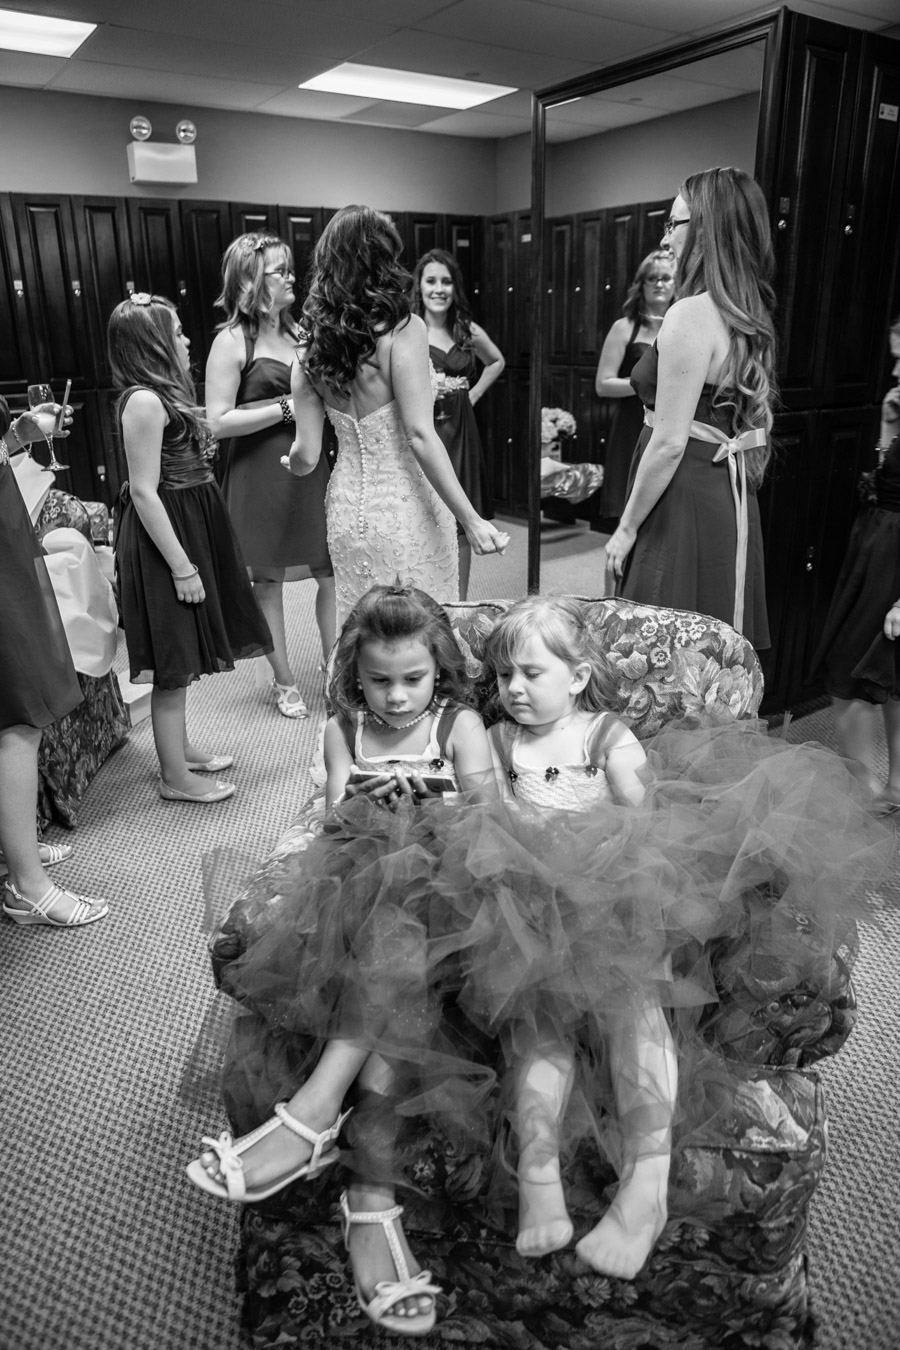 NEPA_Pocono_Weddings_Rob_Lettieri_Photography_03.jpg